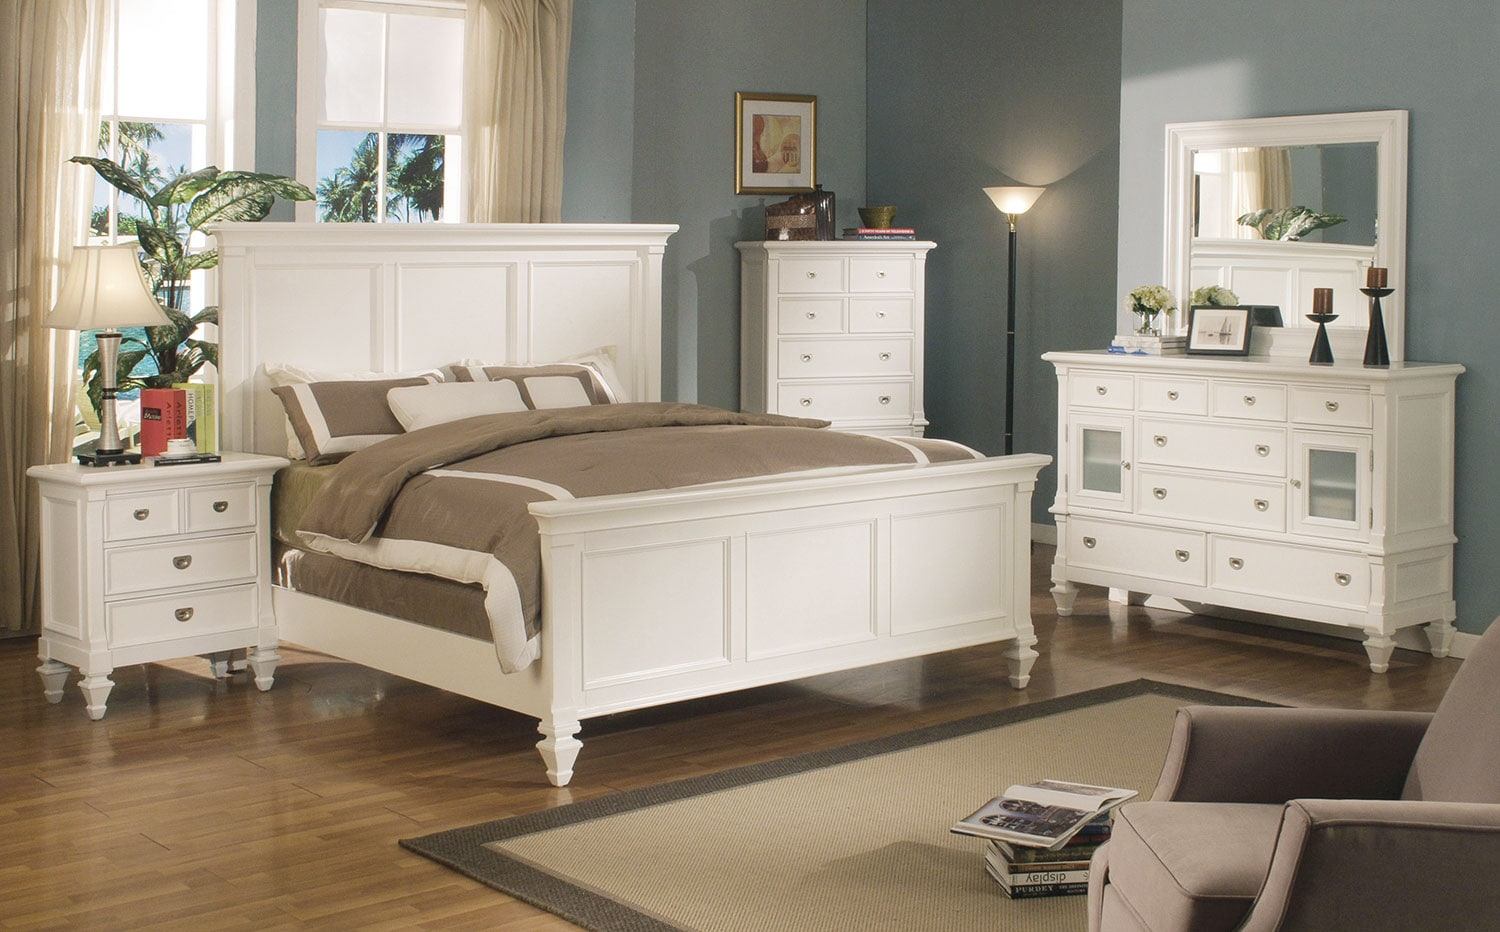 Shannon 4-Piece Queen Bedroom Set - White